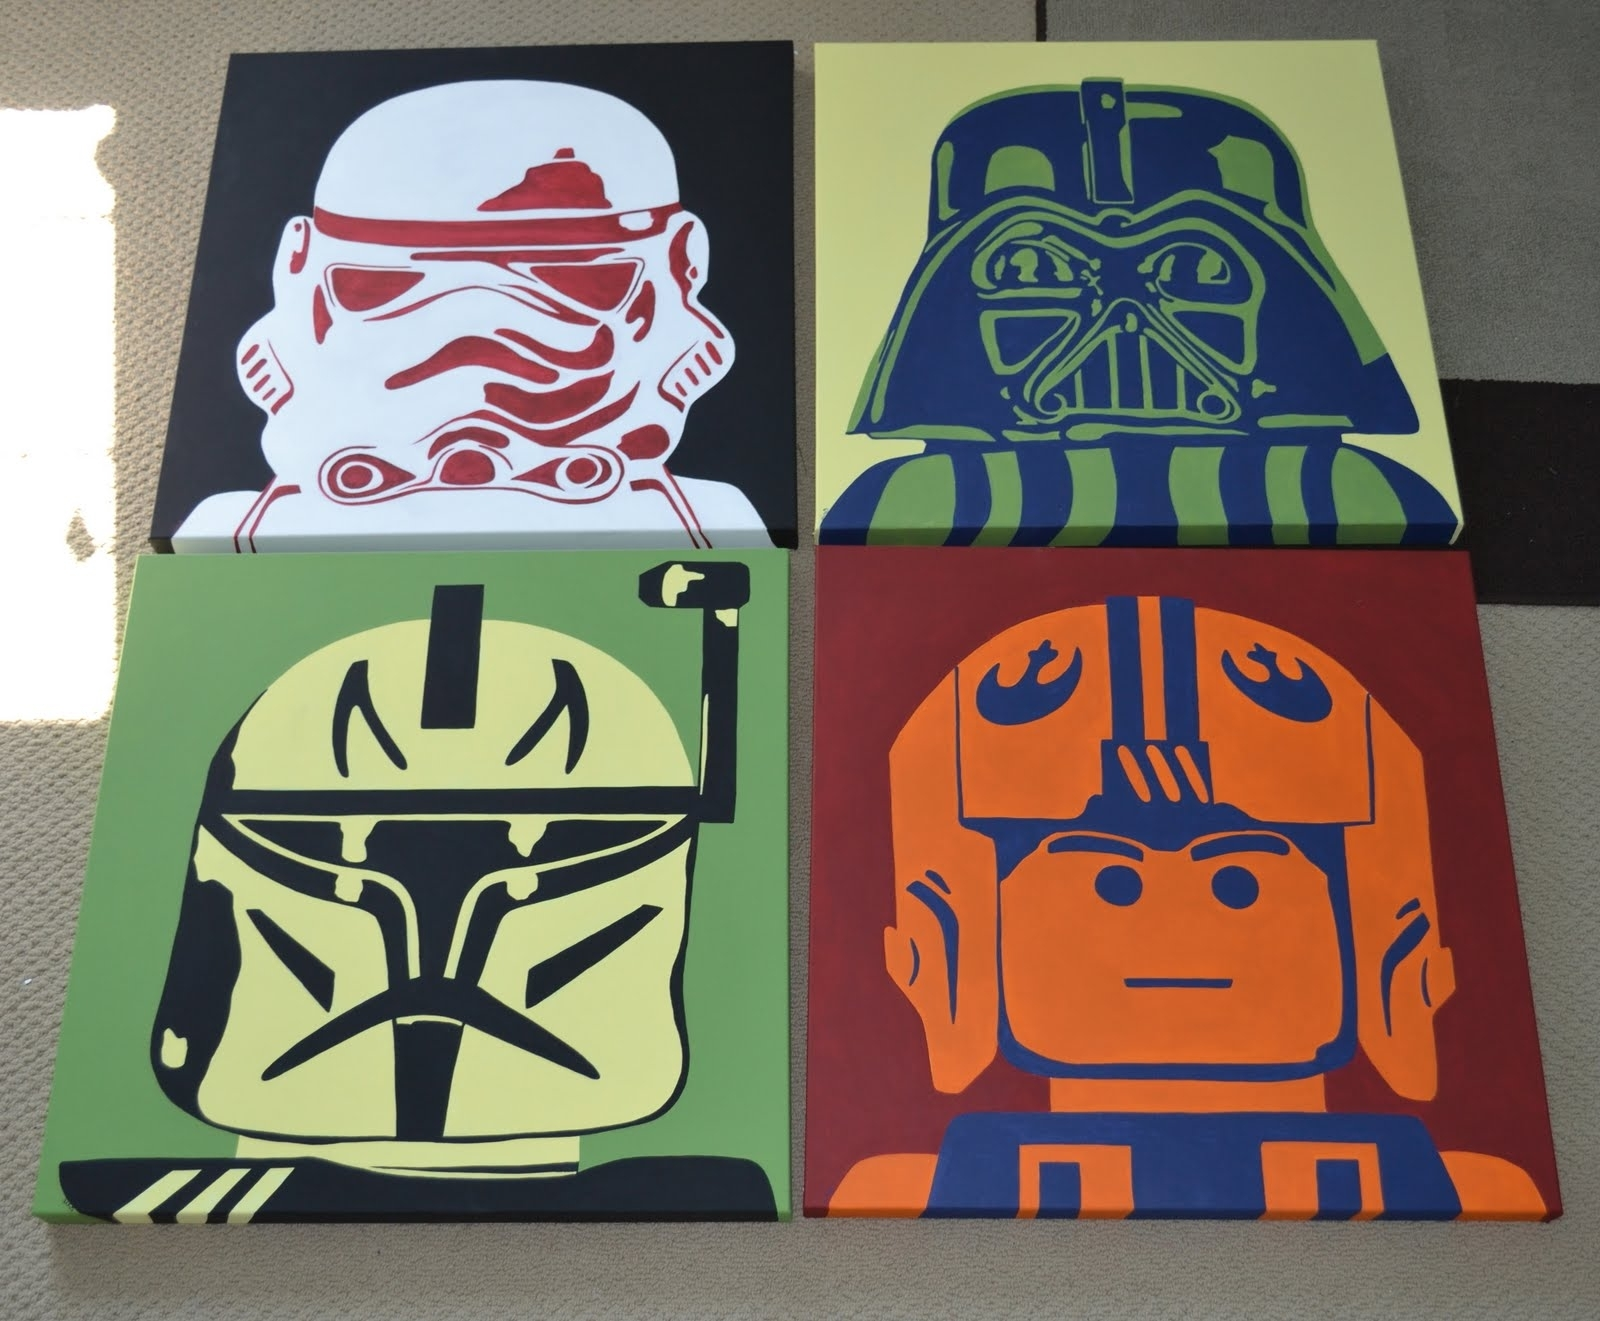 You're Artcorie Kline: Star Wars Legos Pop Art Intended For Preferred Lego Star Wars Wall Art (View 15 of 15)